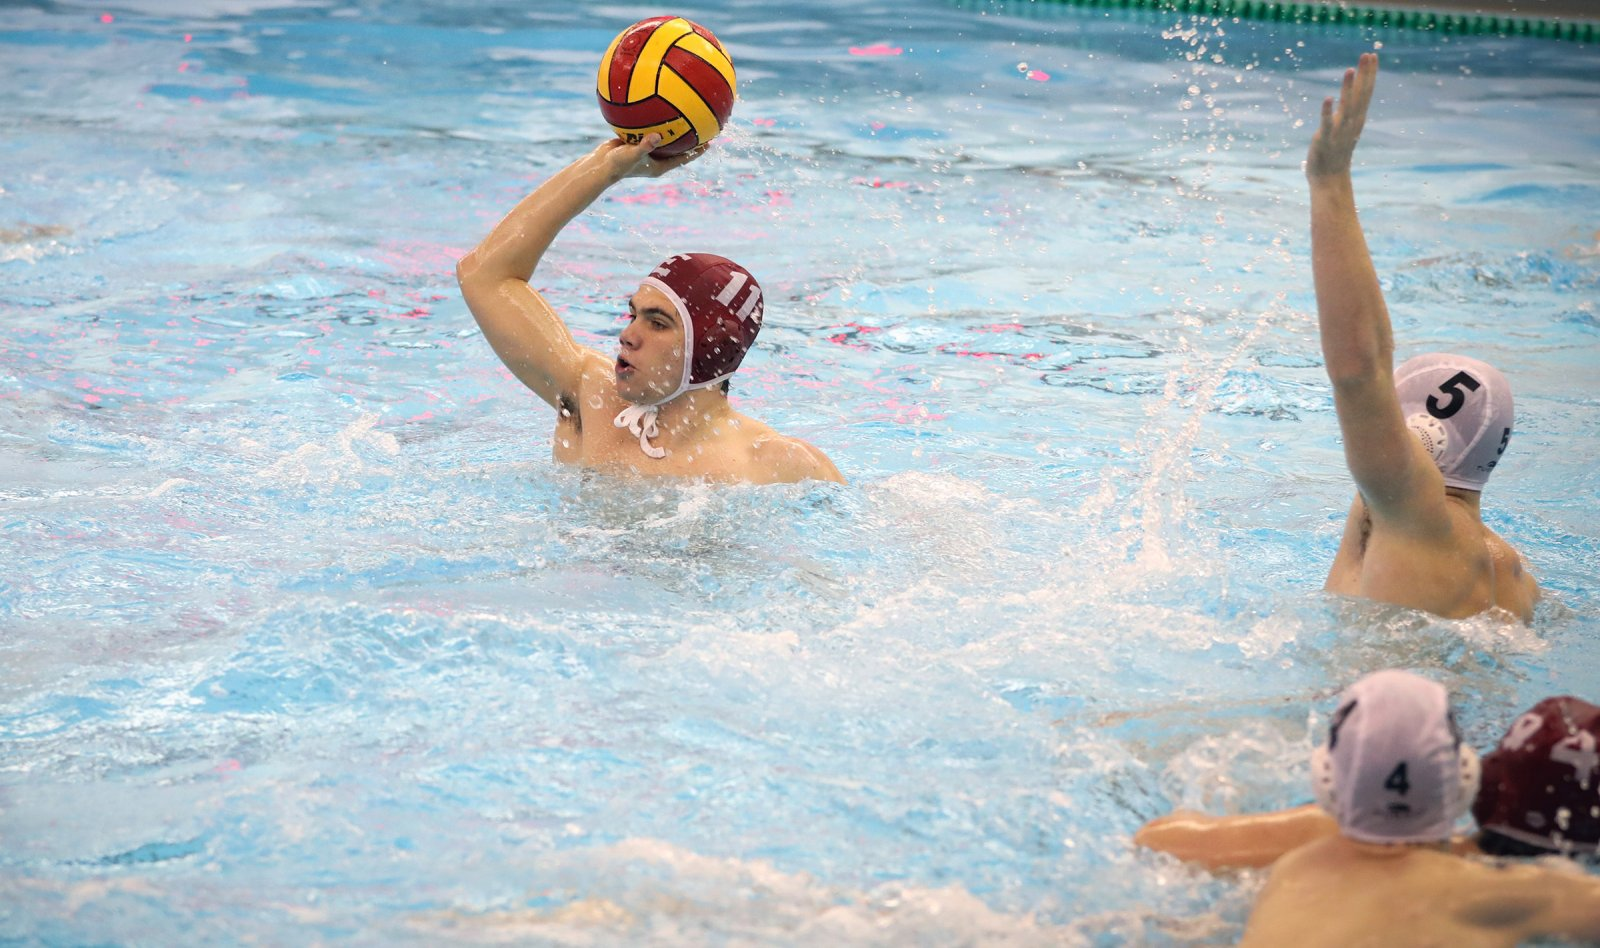 Charlie Venci playing water polo